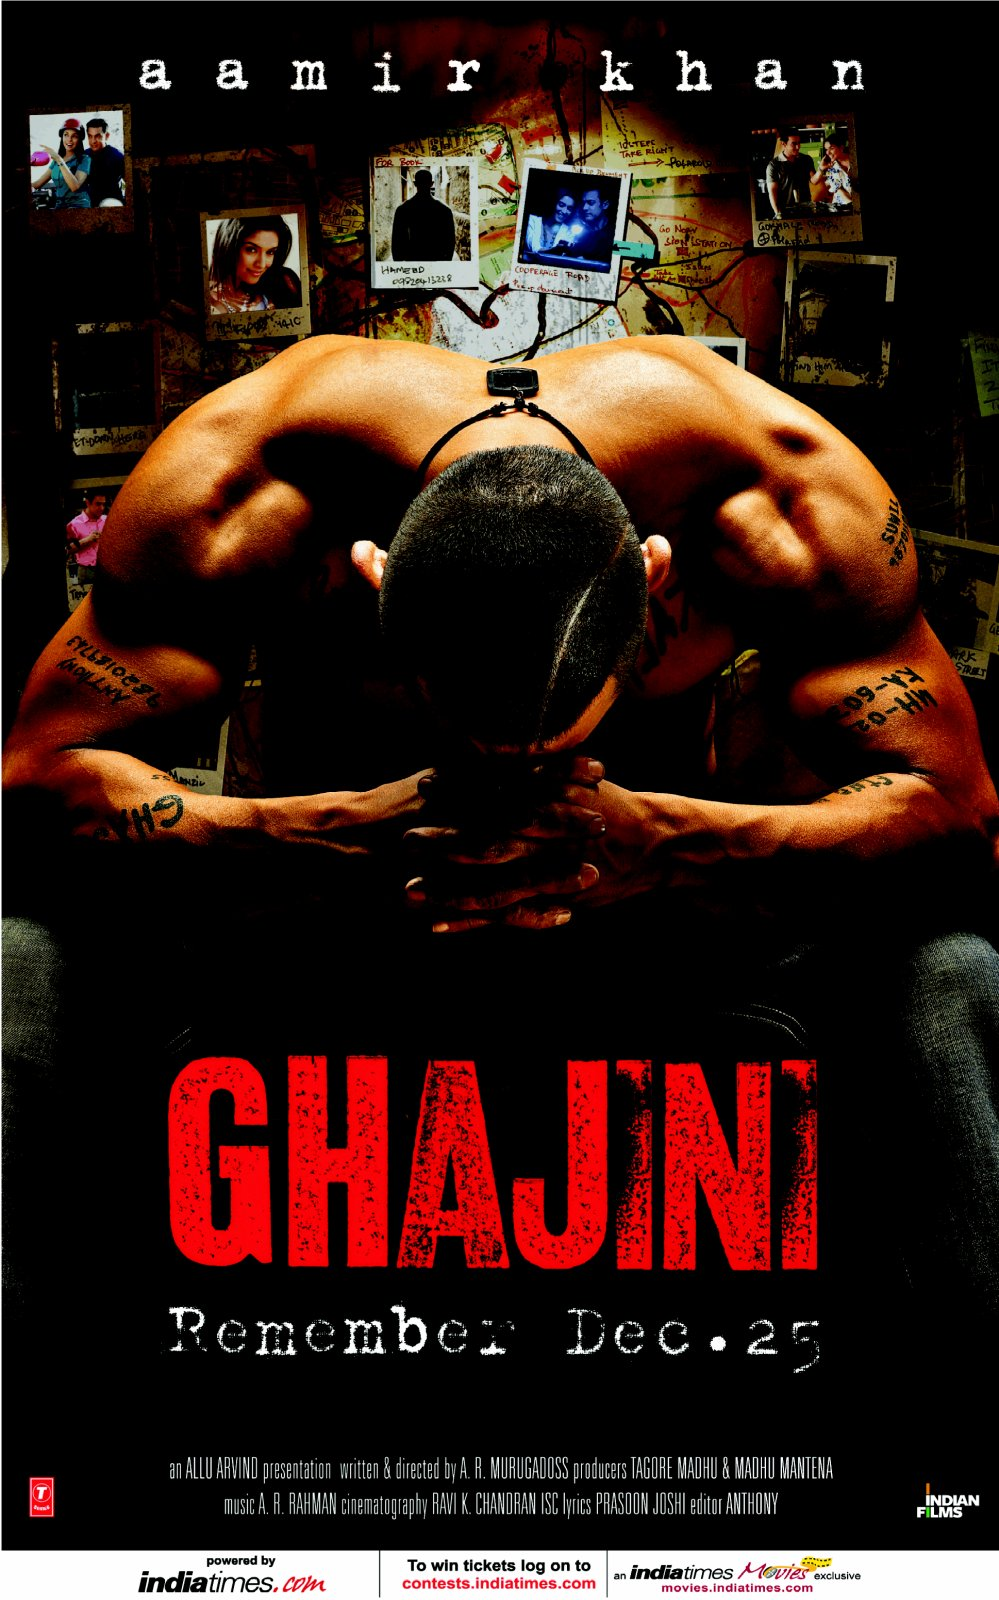 Extreme [ Humans + Creativities + Secrets ]: Most Creative Posters of Bollywood Hindi movies